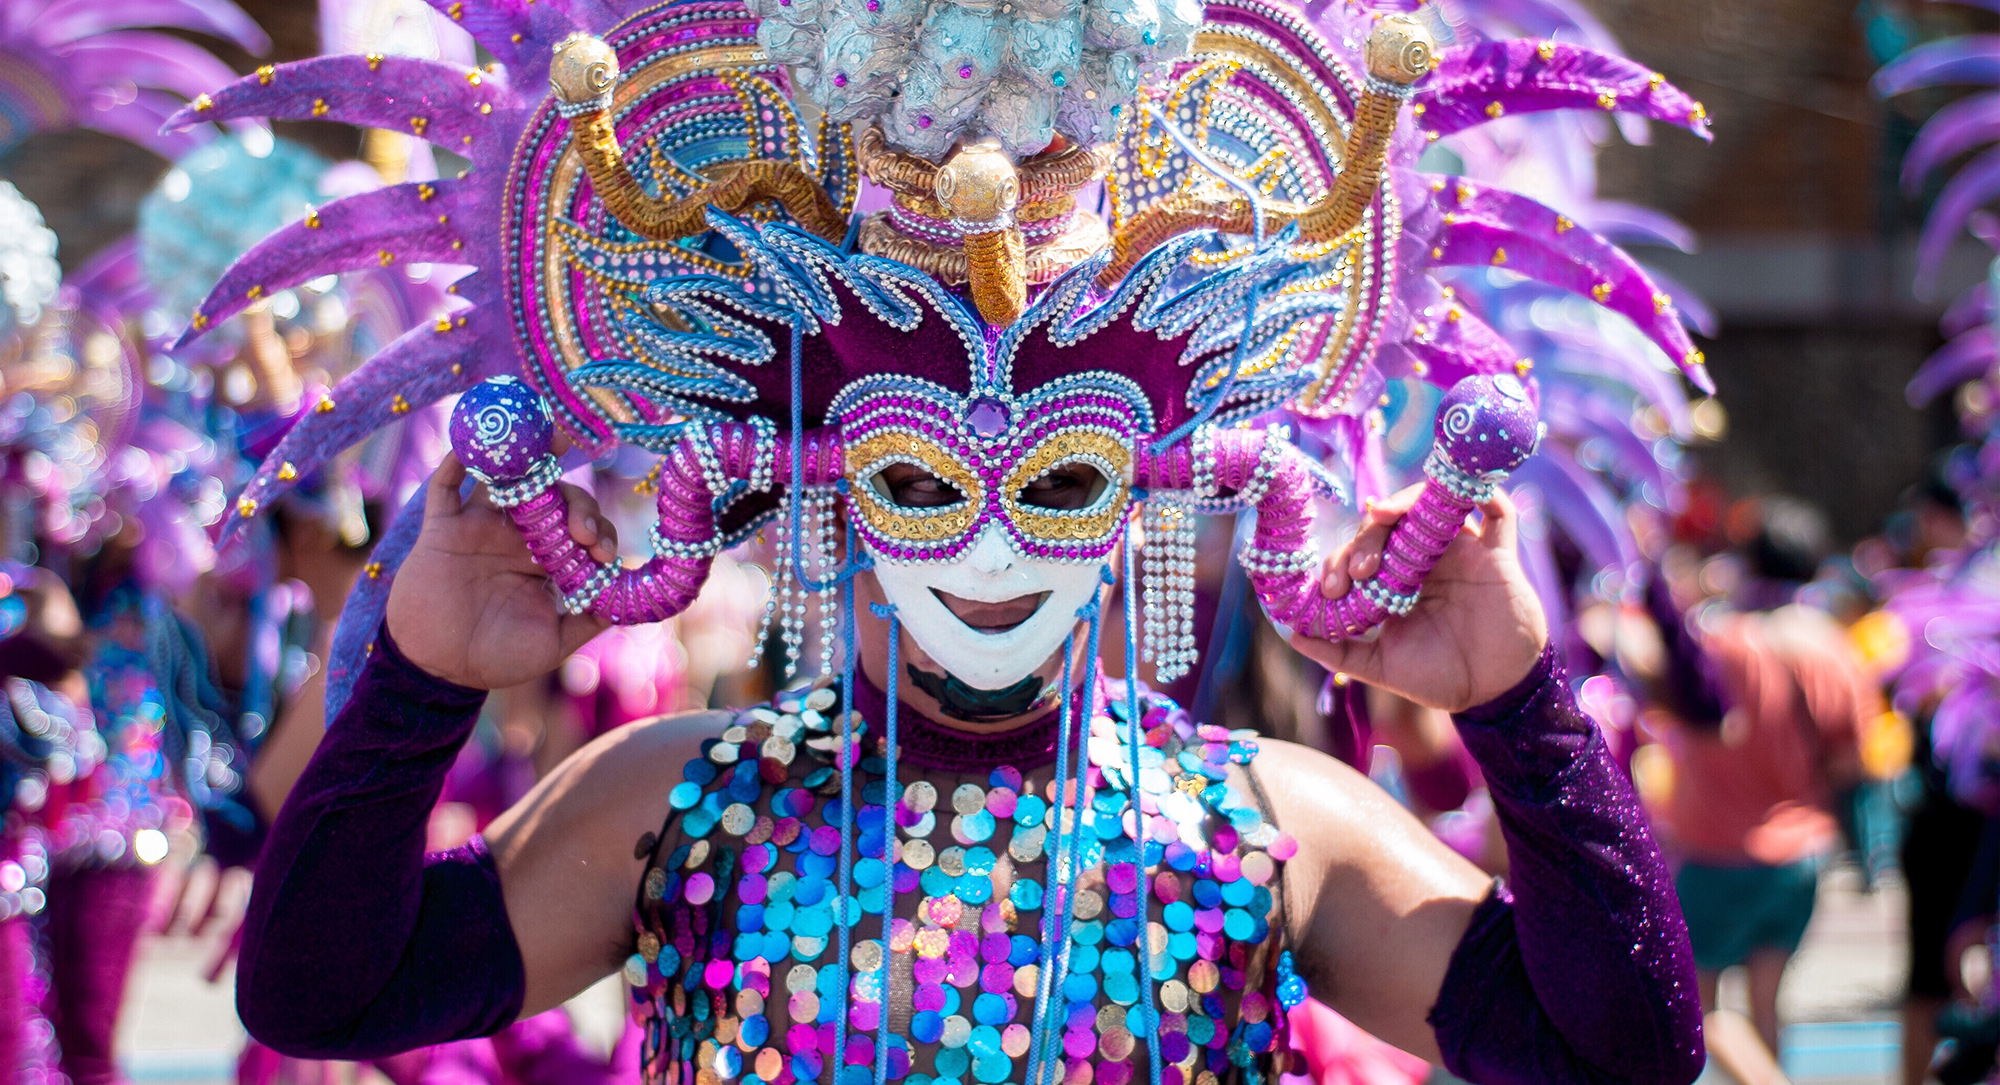 Masskara festival in Bacolod City, Philippines